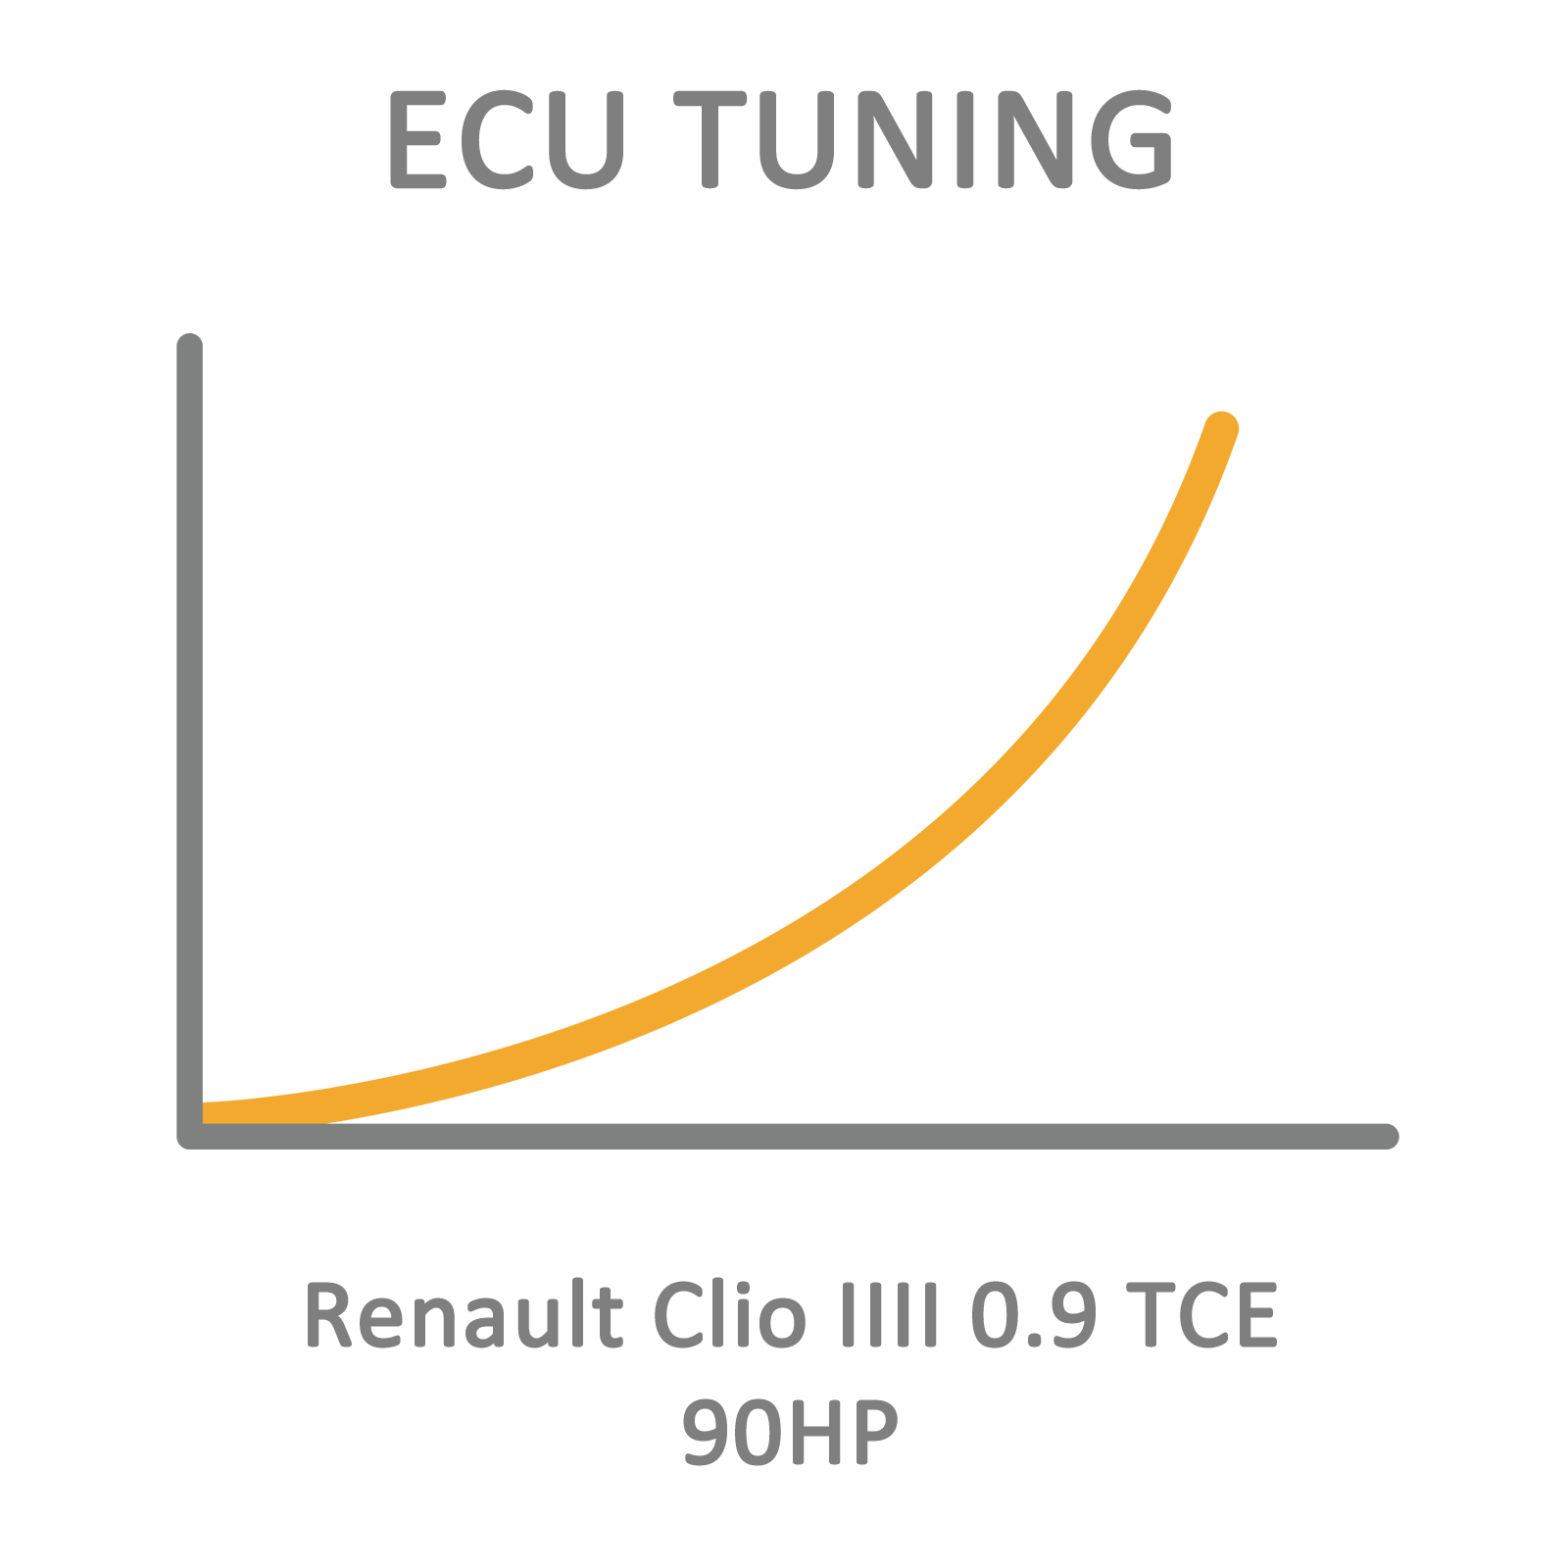 Renault Clio IIII 0.9 TCE 90HP ECU Tuning Remapping